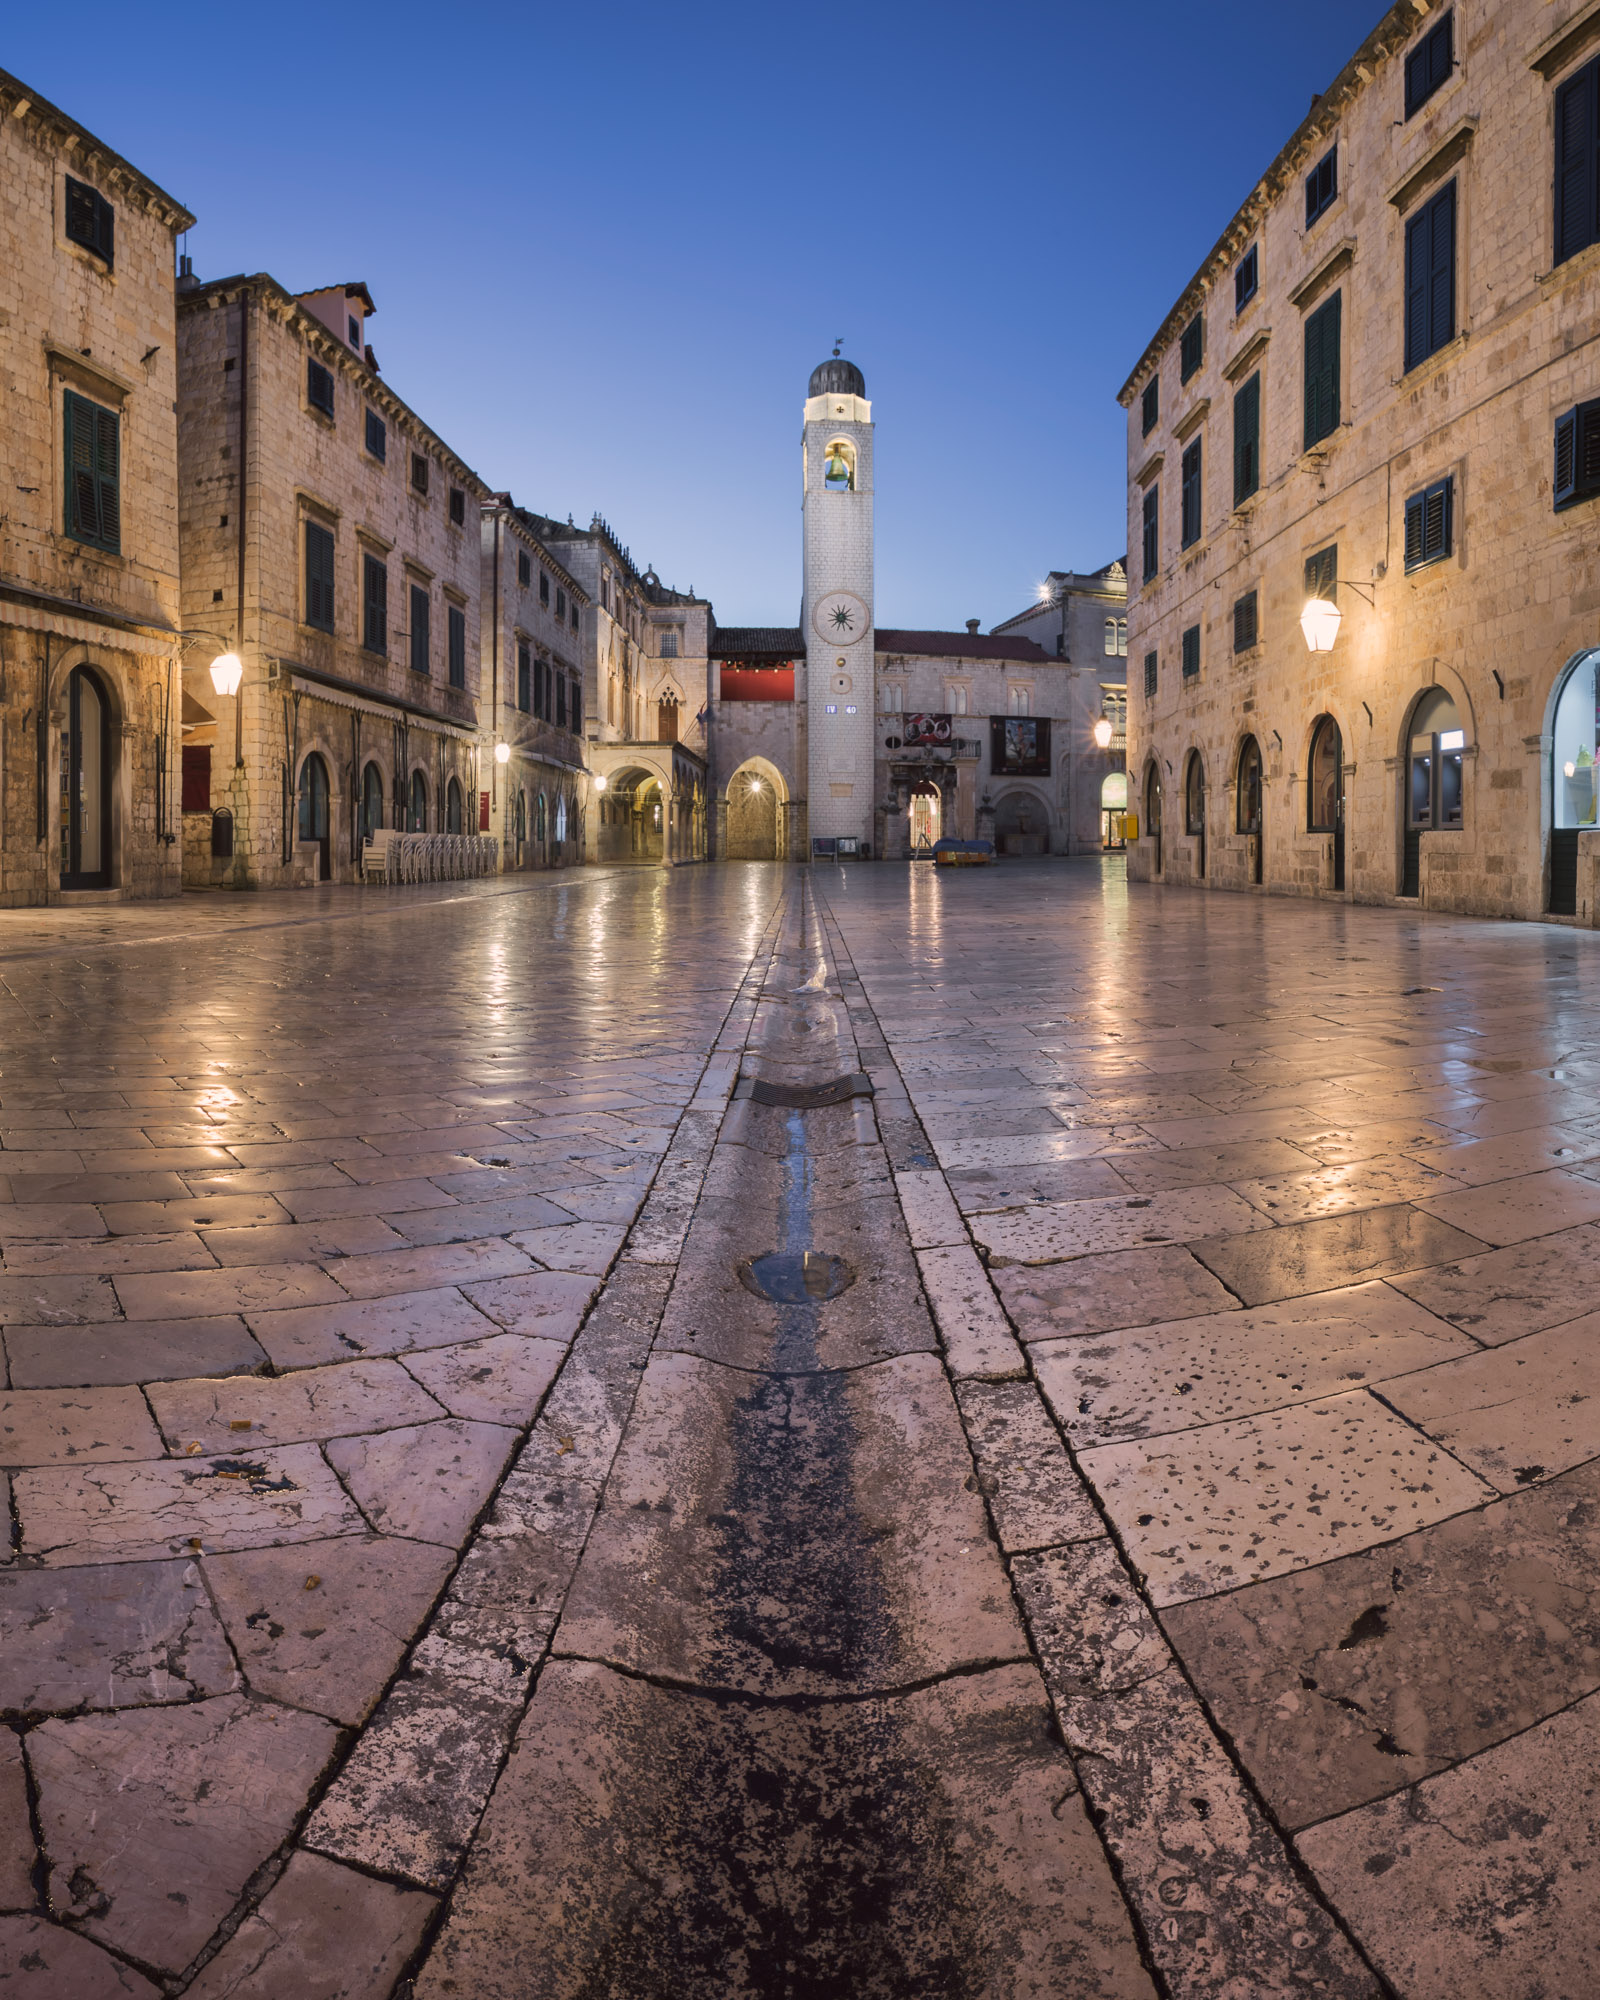 Stradun Street and Luza Square in Dubrovnik, Croatia